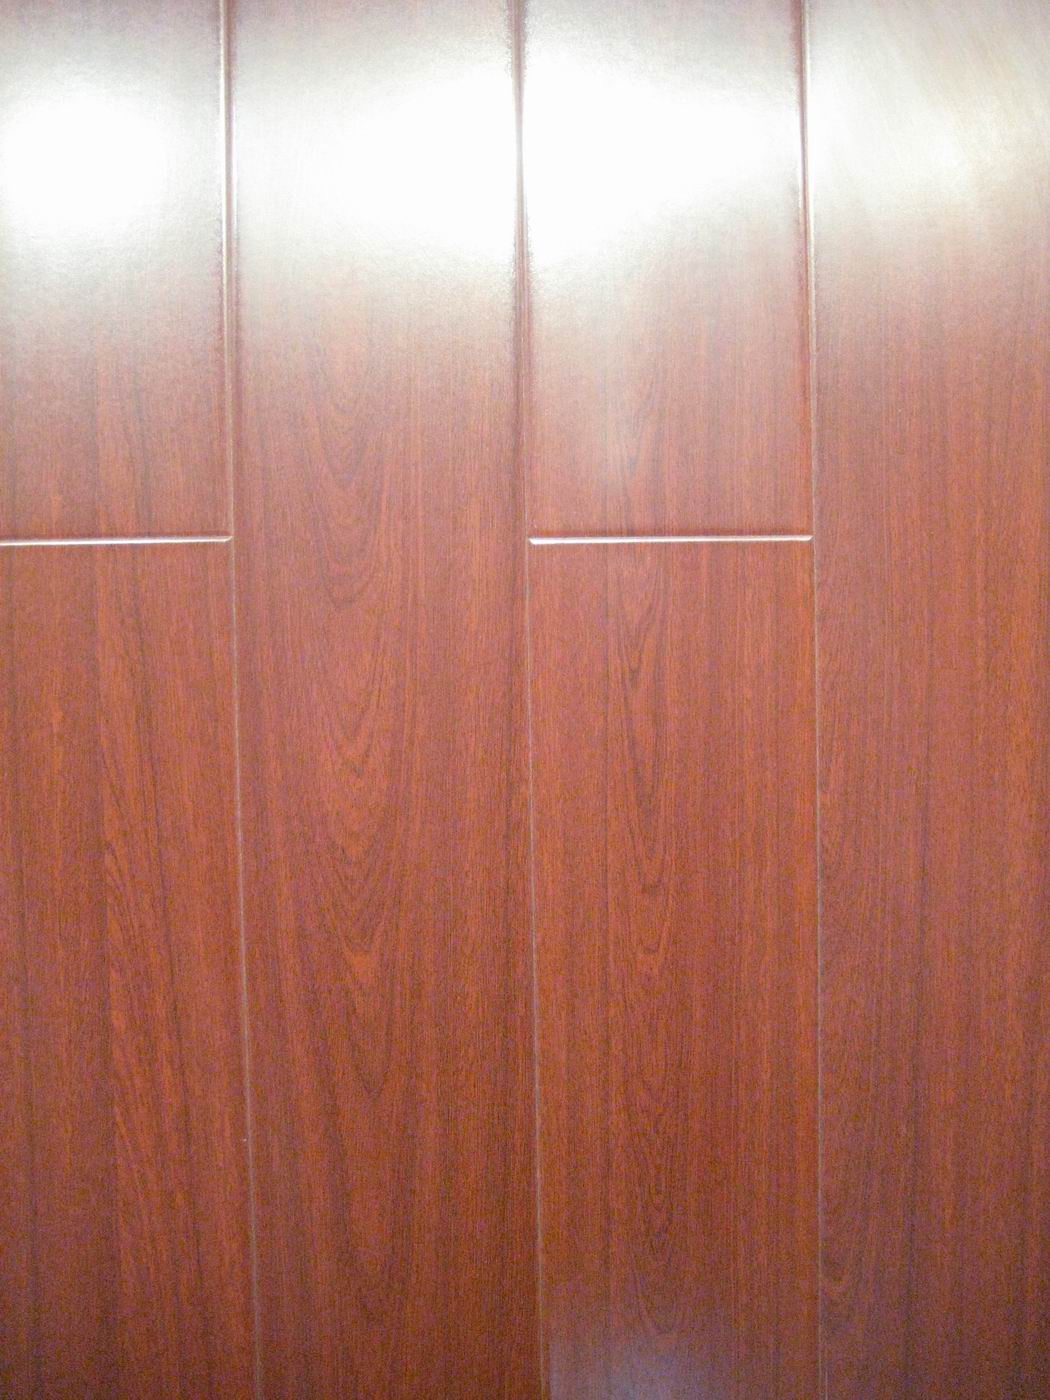 laminated wooden flooring photo - 3